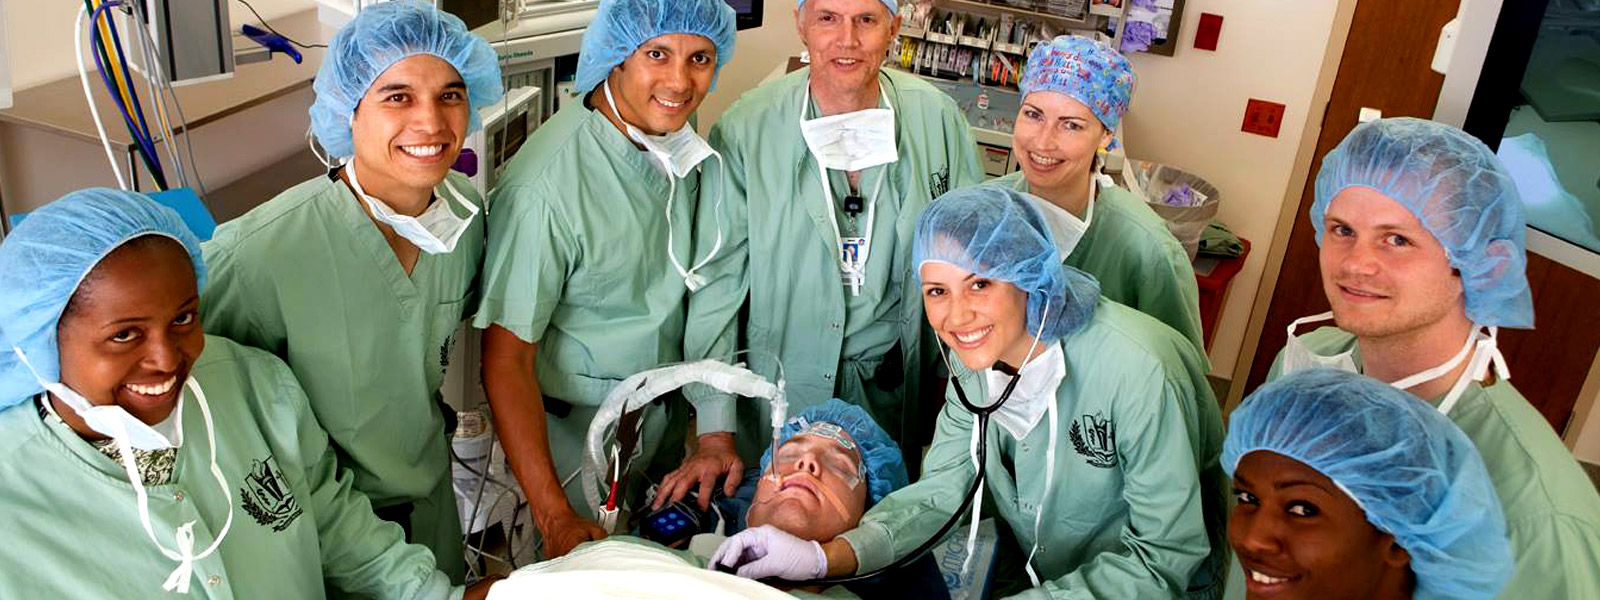 LLU Nurse Anesthetist CRNA Students